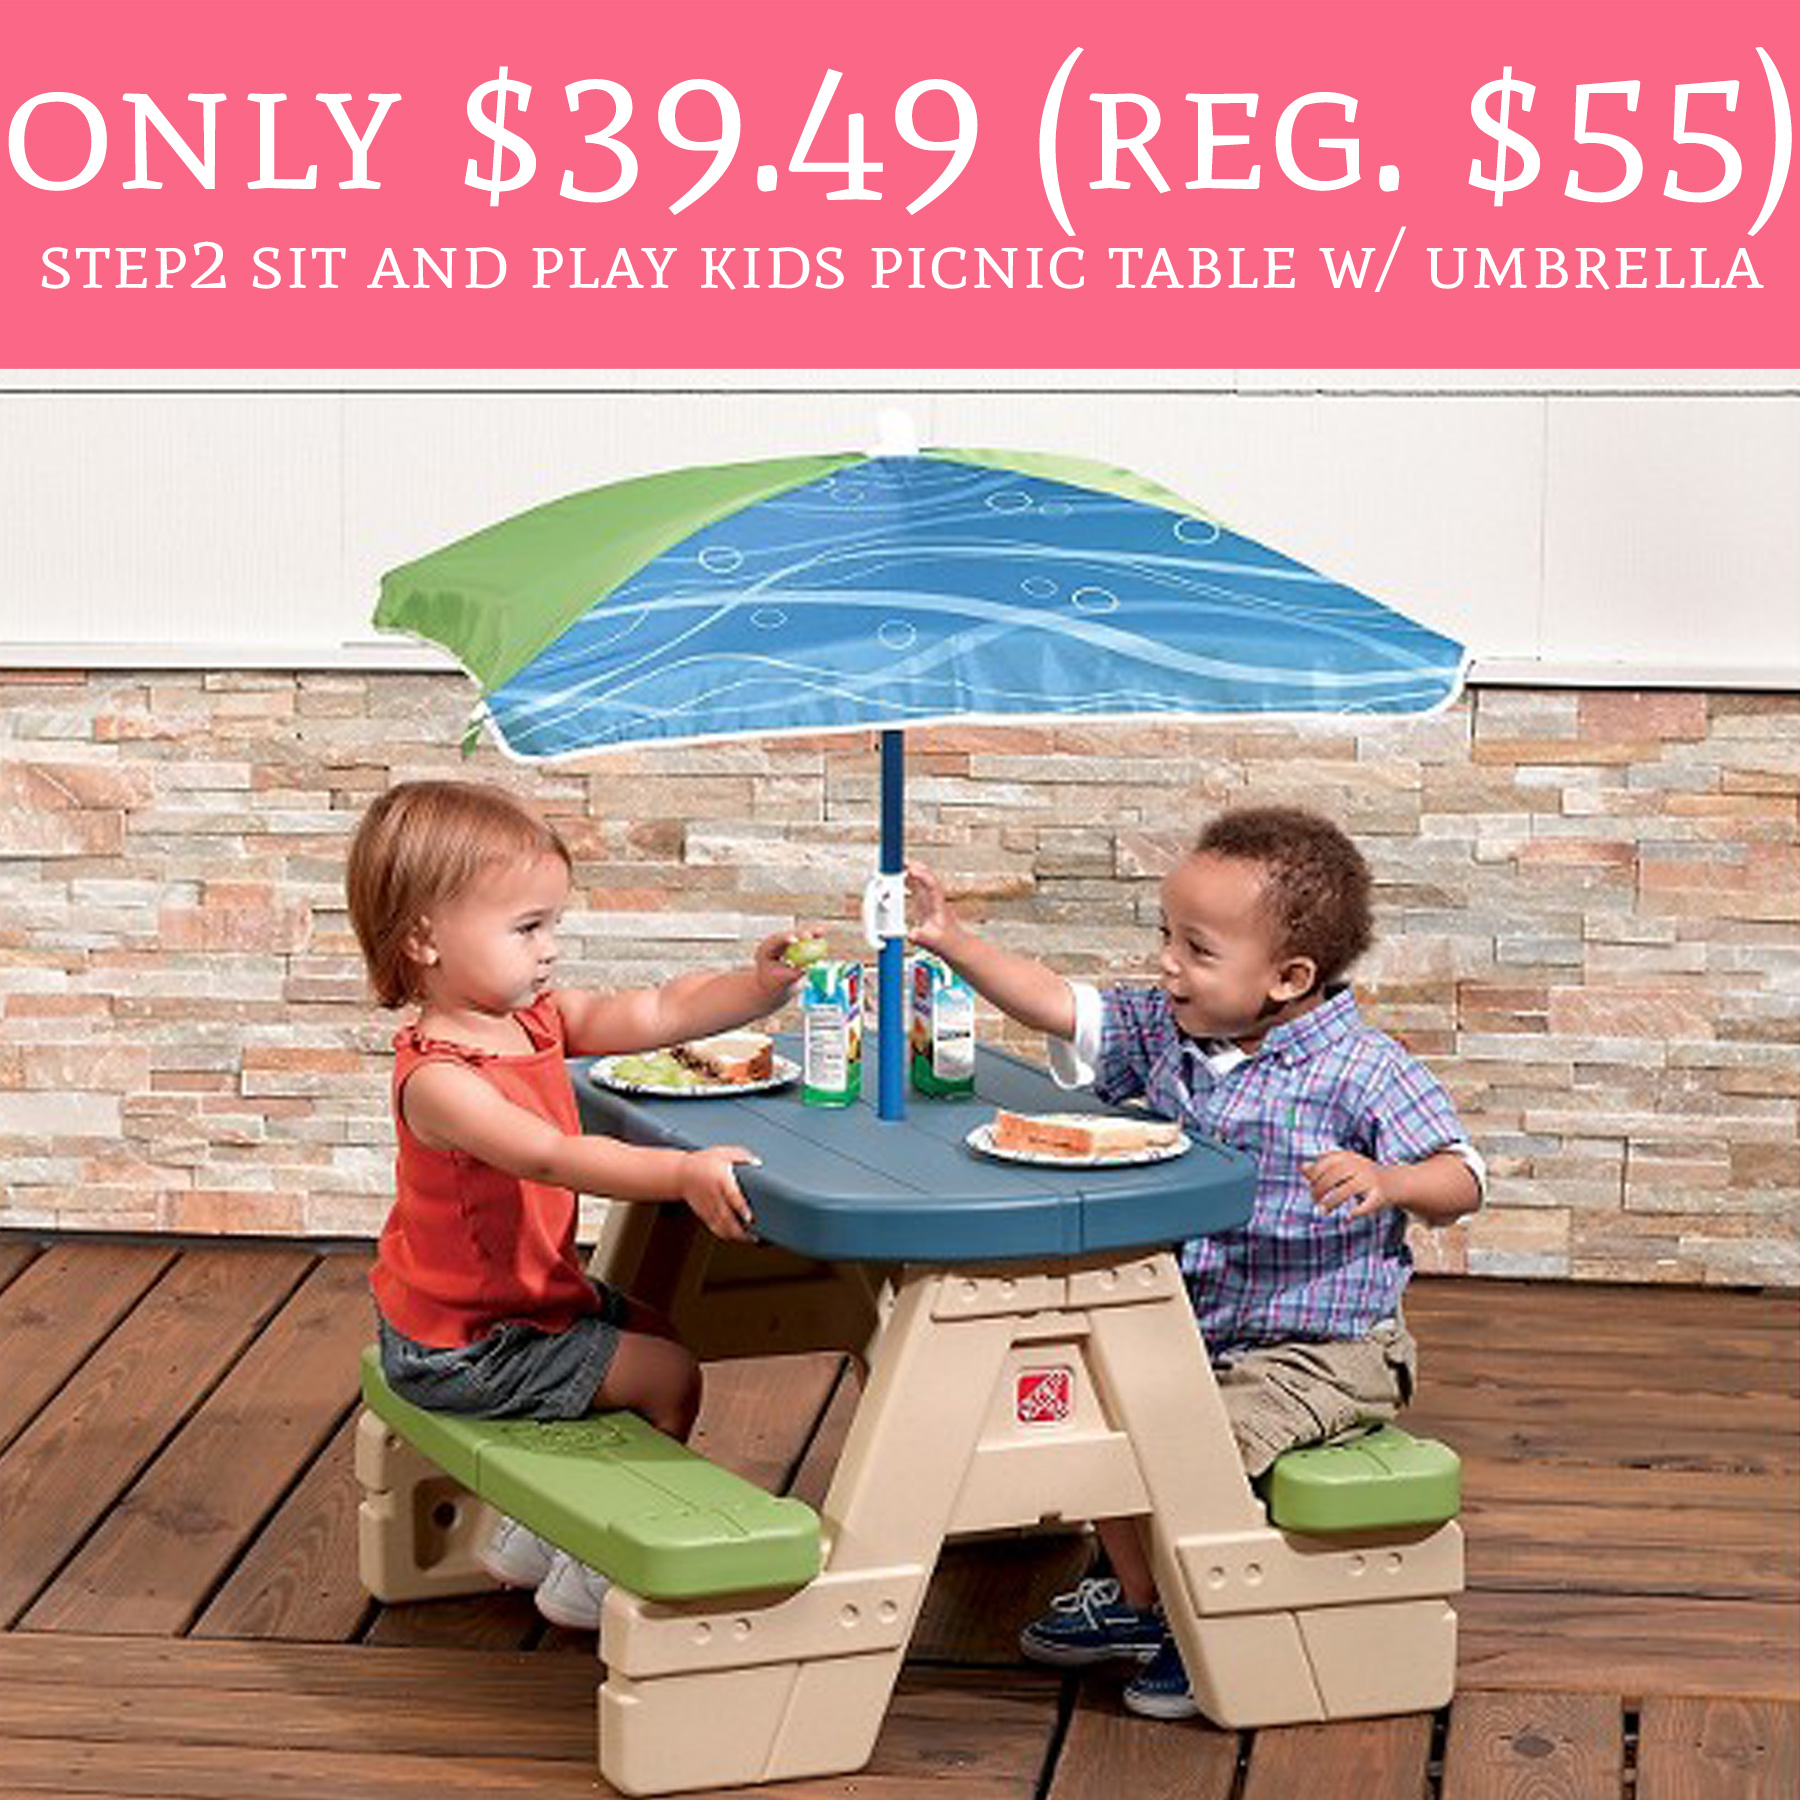 Rare savings regular 55 step2 sit play kids - Children s picnic table with umbrella ...